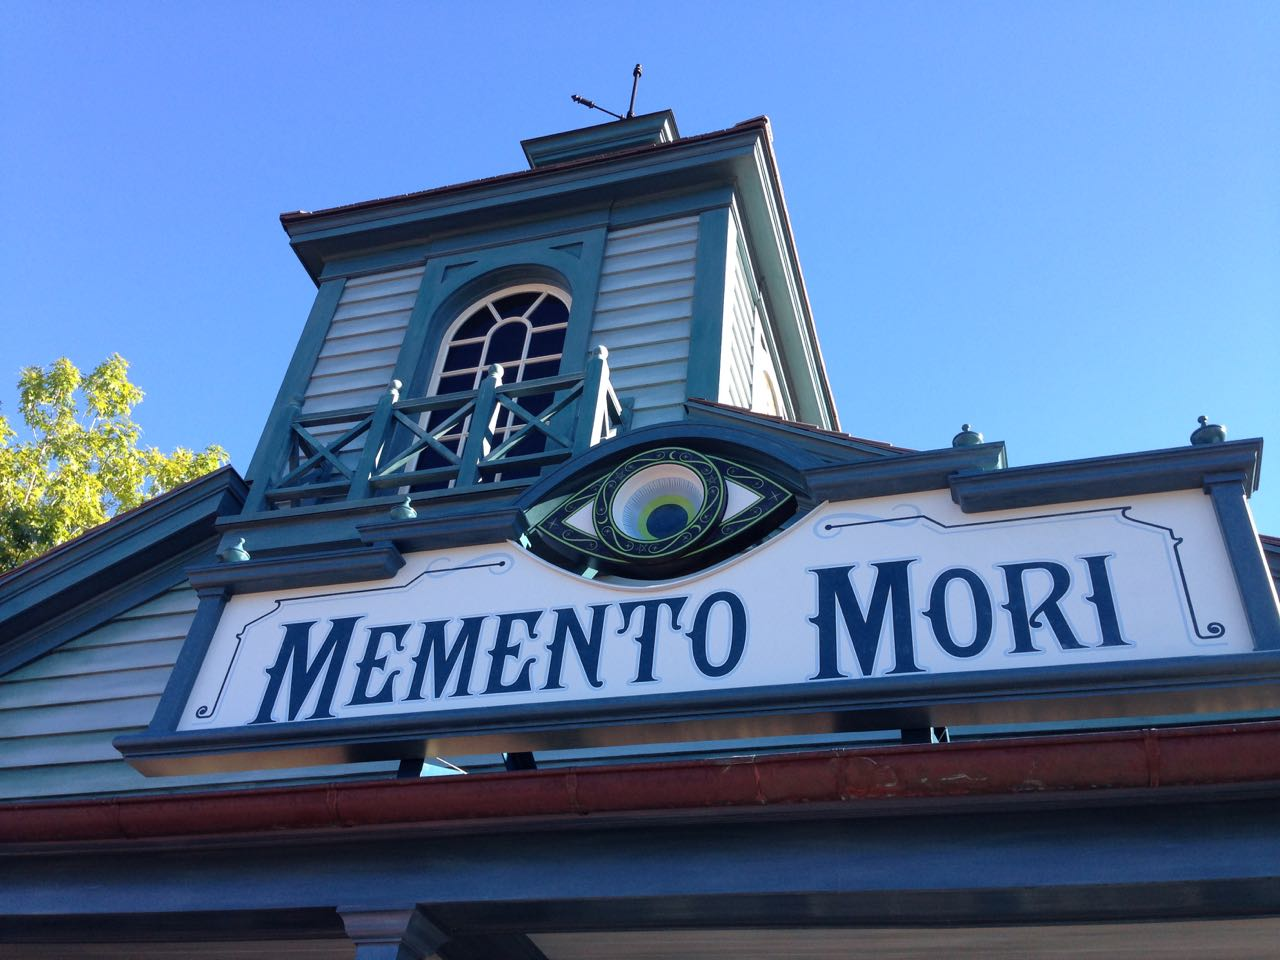 The Magic Kingdom's Memento Mori